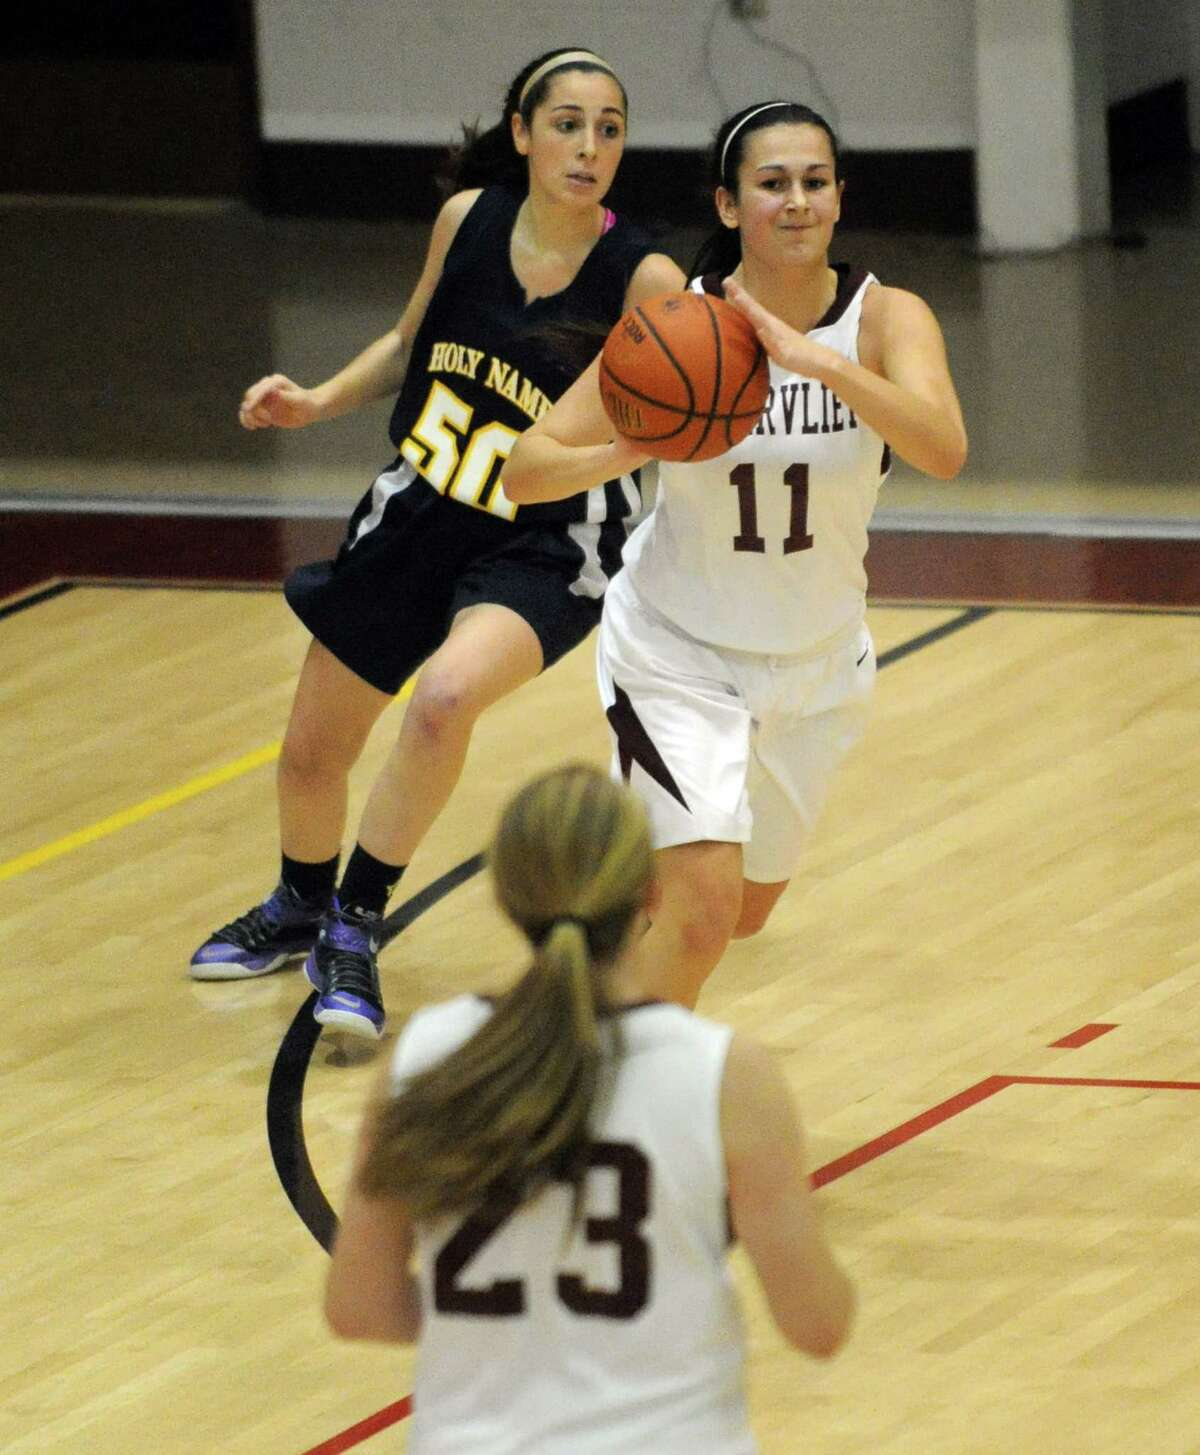 Watervliet's Meghan Capone looks to pass during their high school girl's basketball game against Holy Names on Tuesday Dec. 16, 2014 in Watervliet ,N.Y. (Michael P. Farrell/Times Union)